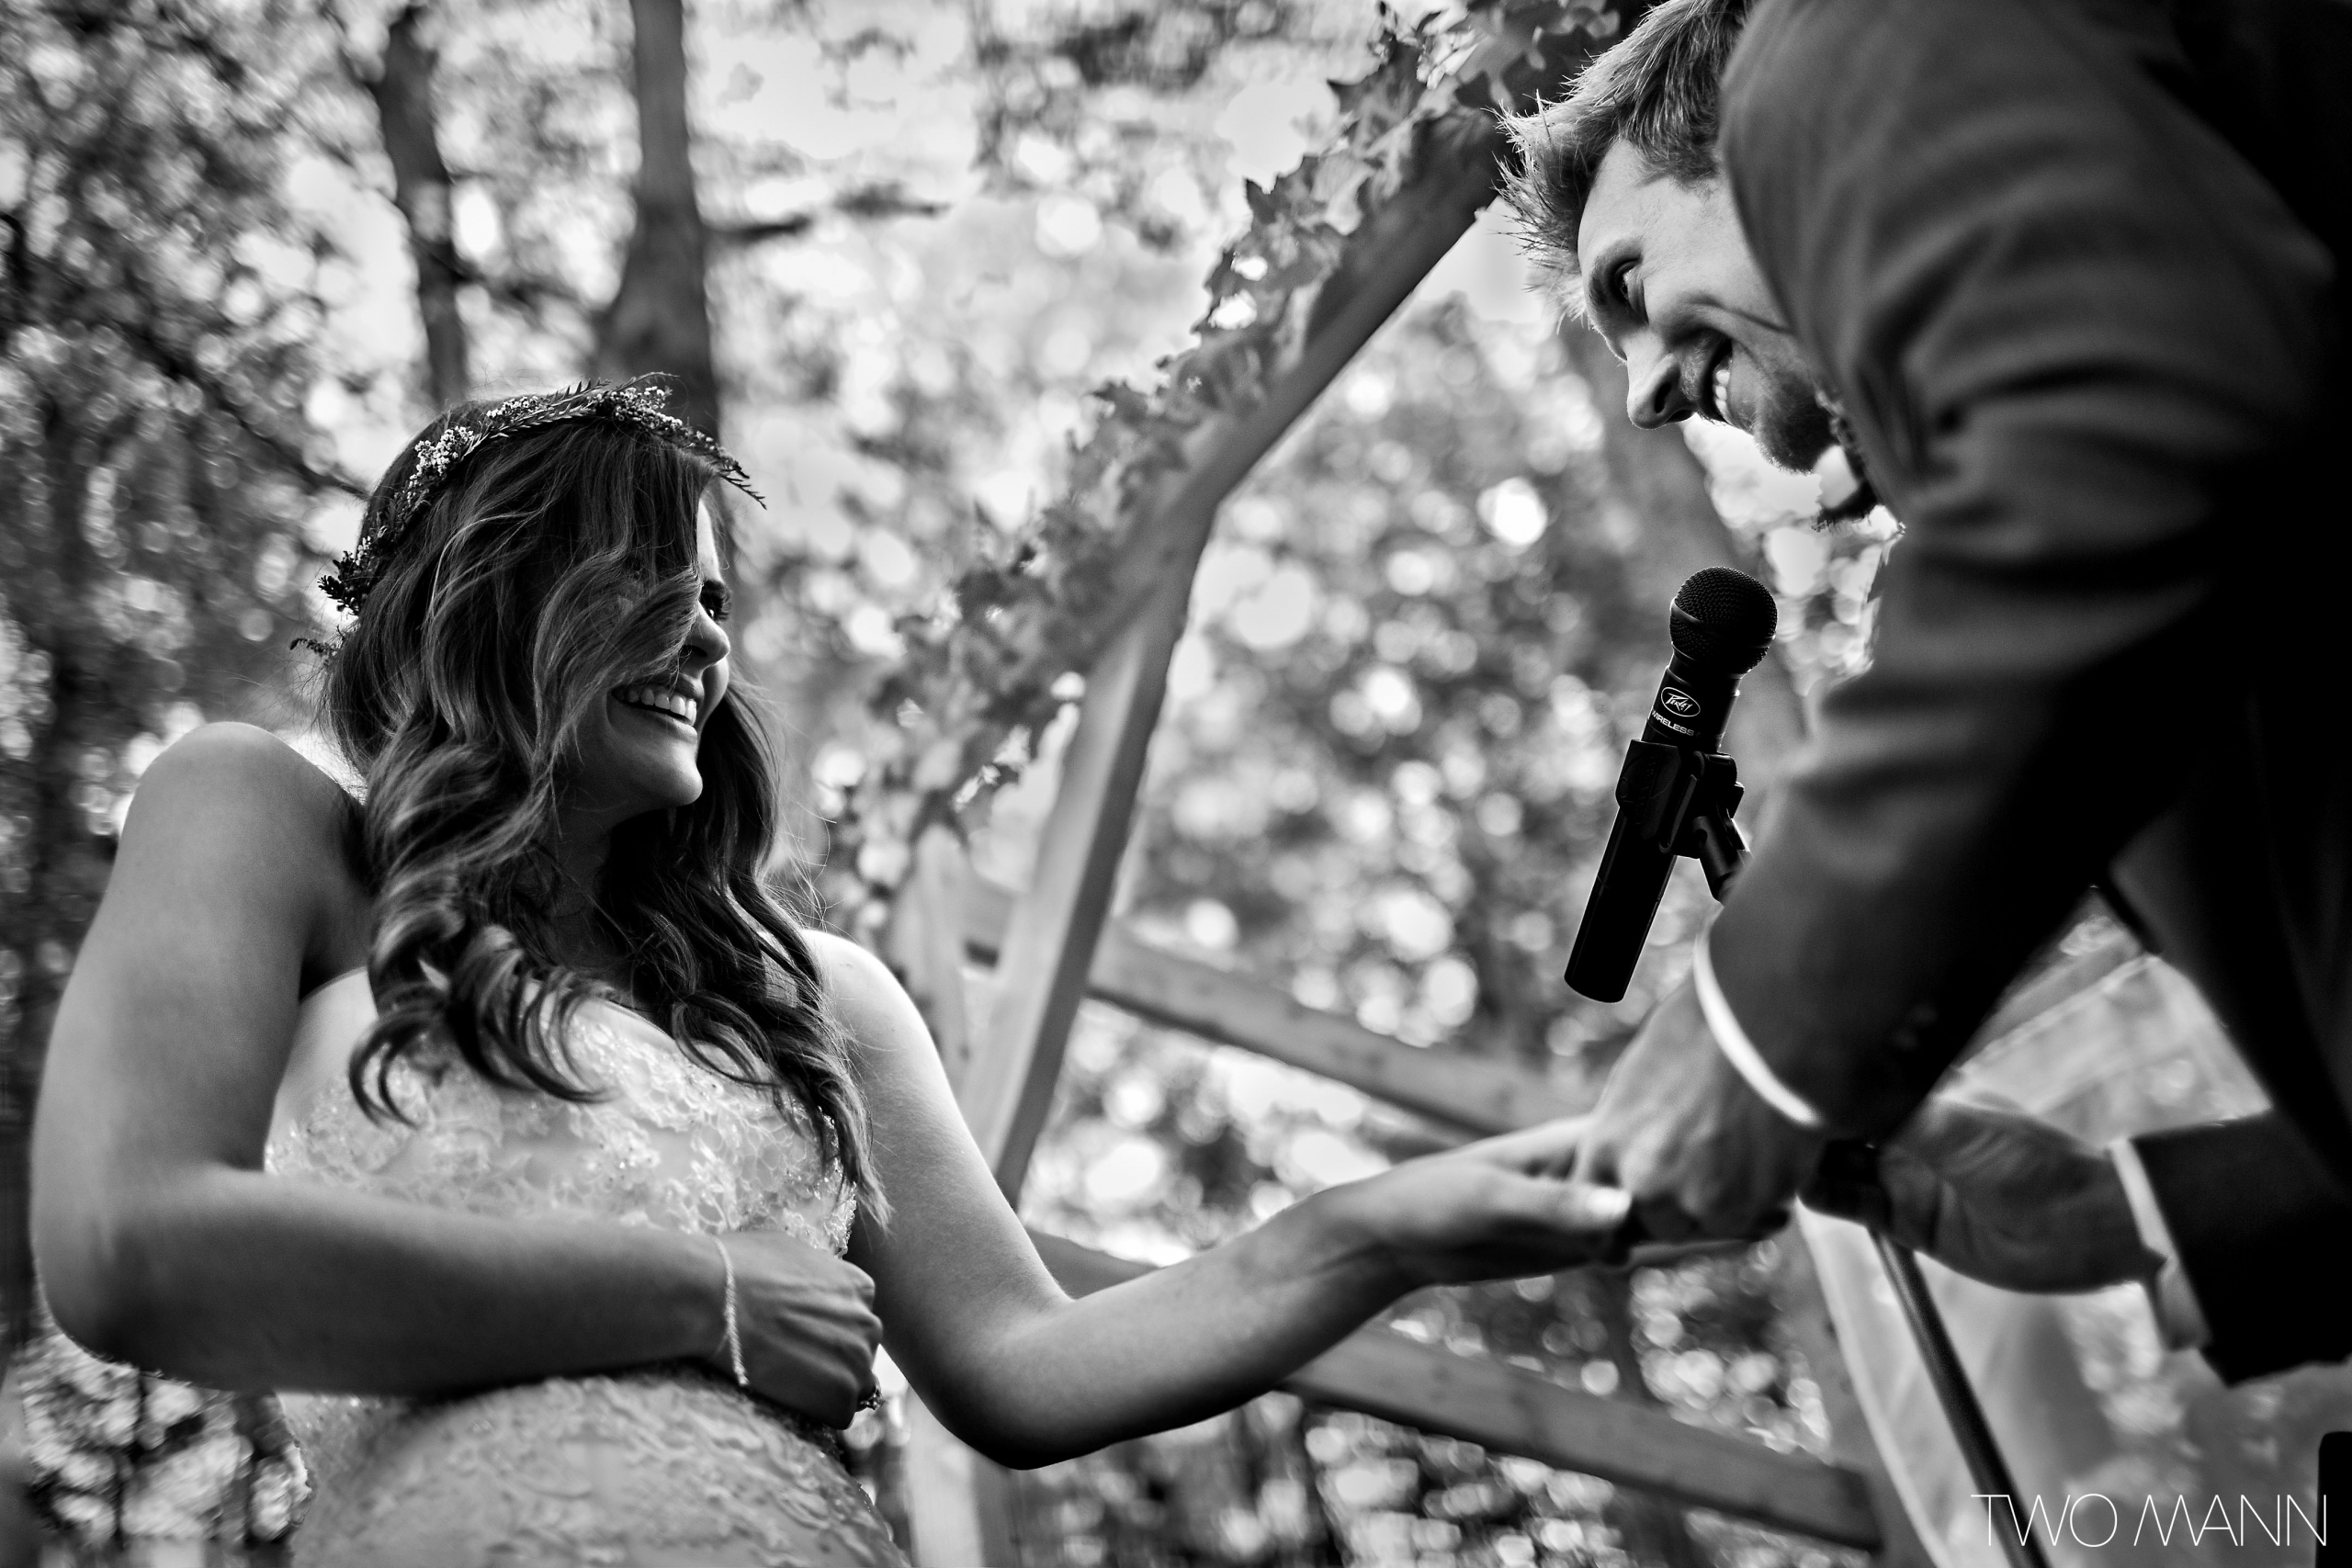 a groom putting ring on bride's finger